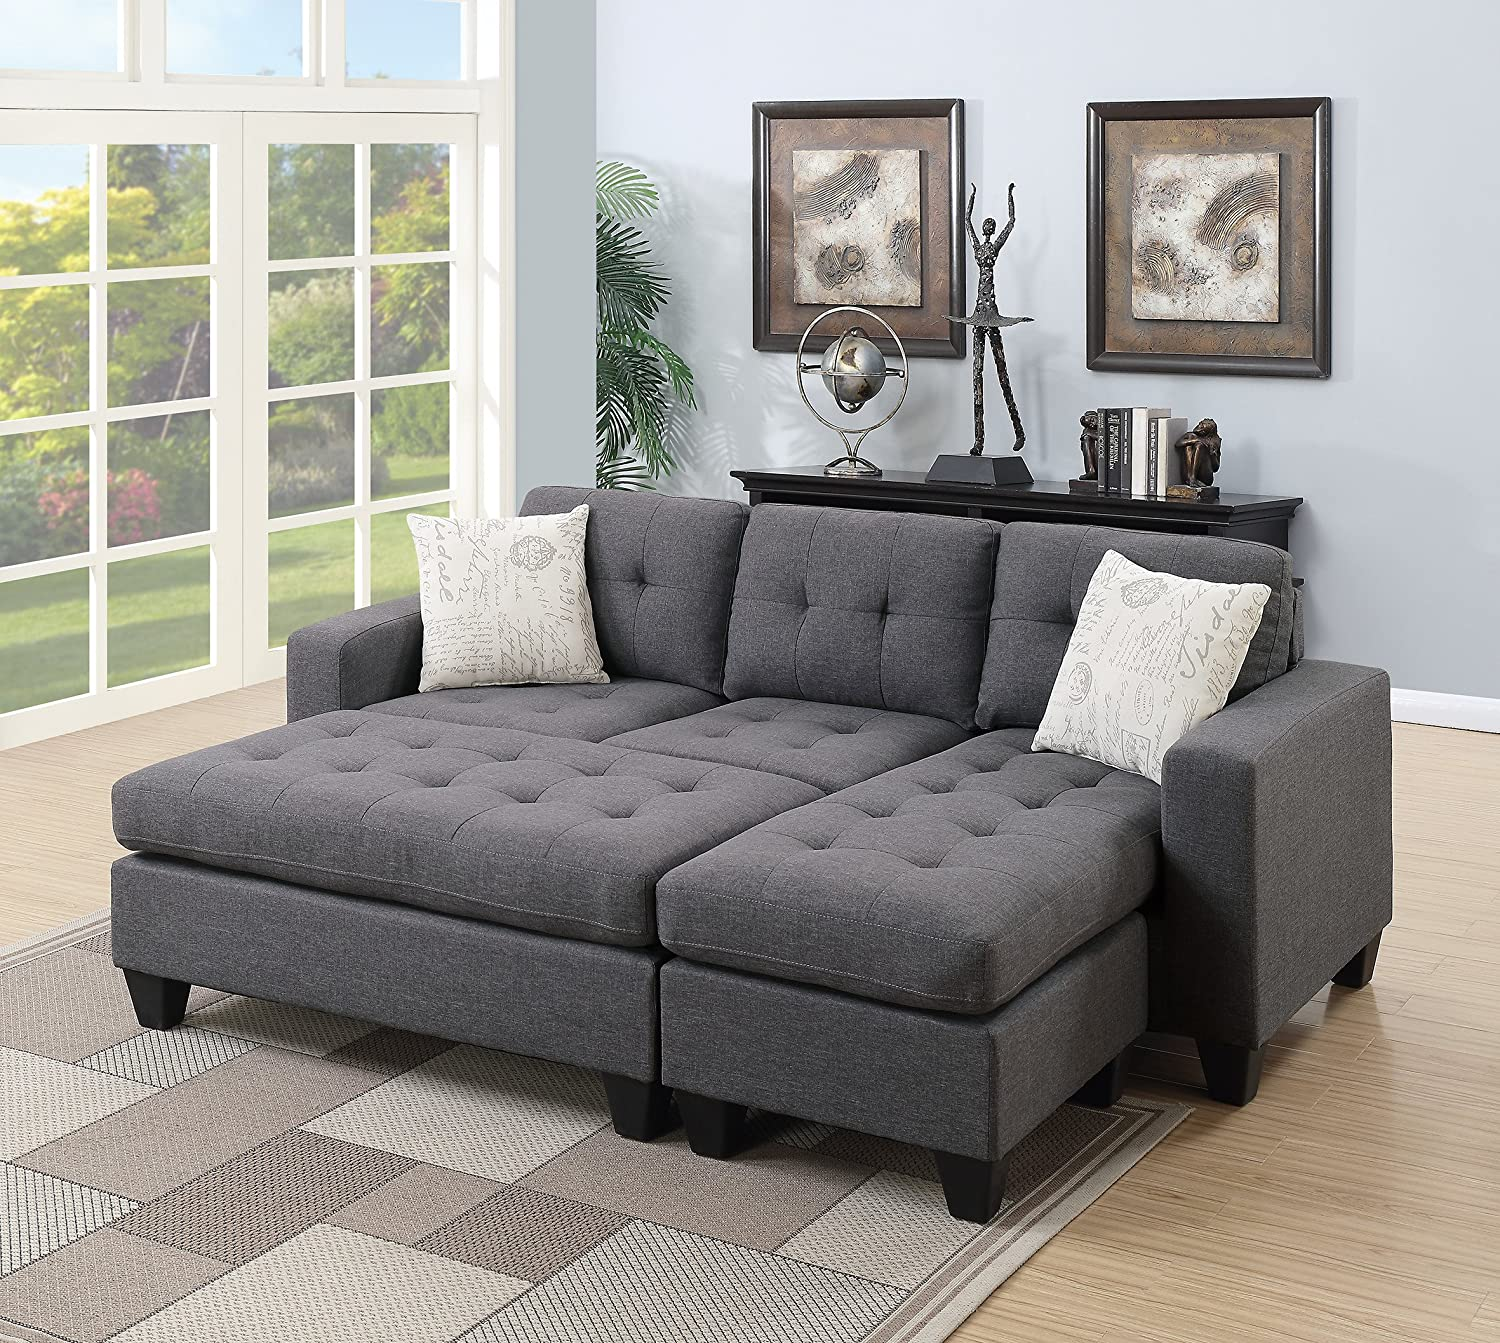 Amazon.com: Modern Living Room Bobkona All in One Sectional ...